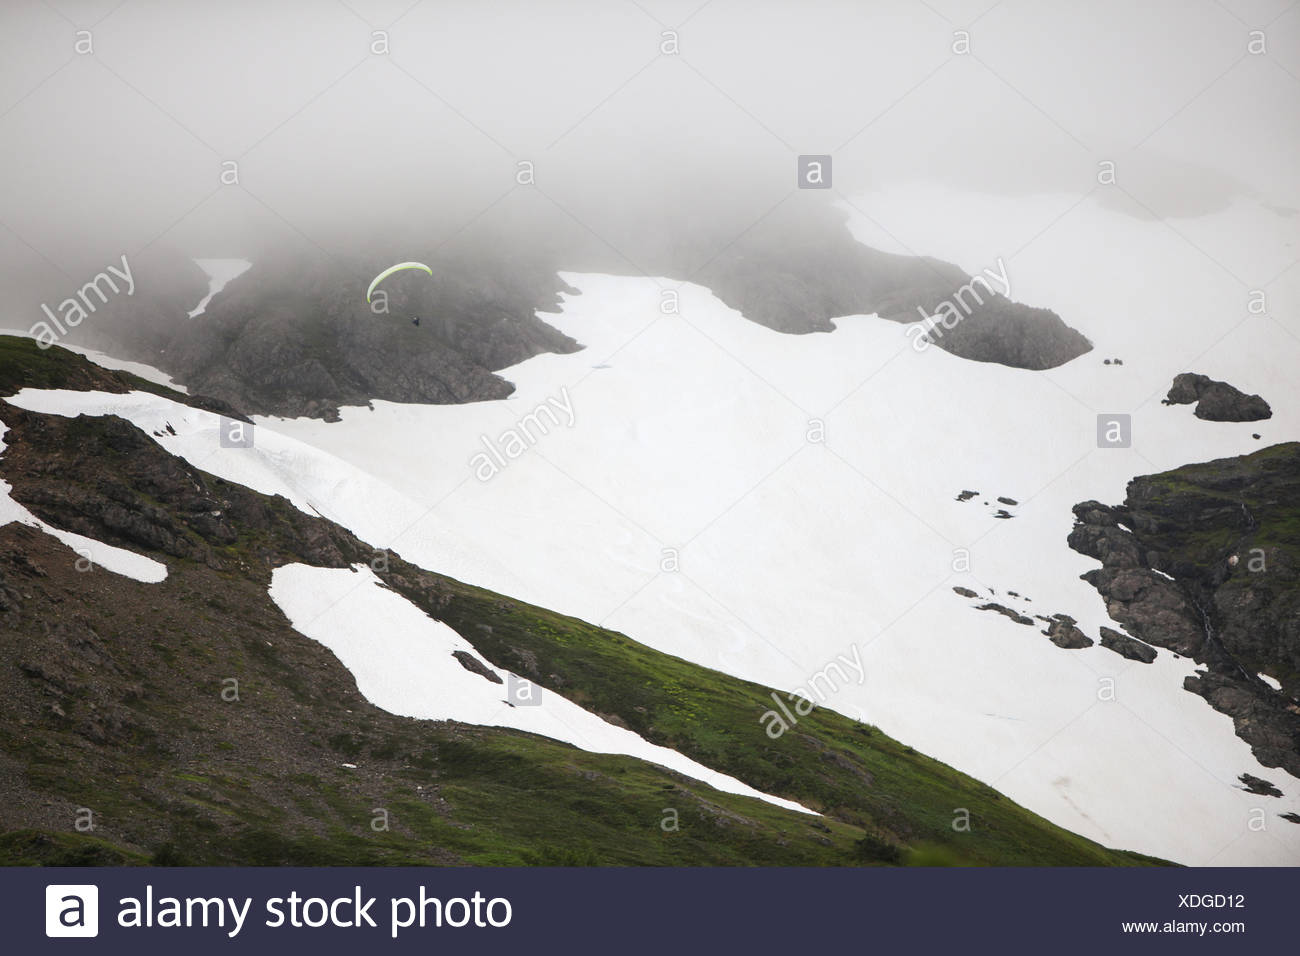 Amid dense fog and cloud cover, a paraglider navigates above dramatic snow-covered landscape. - Stock Image